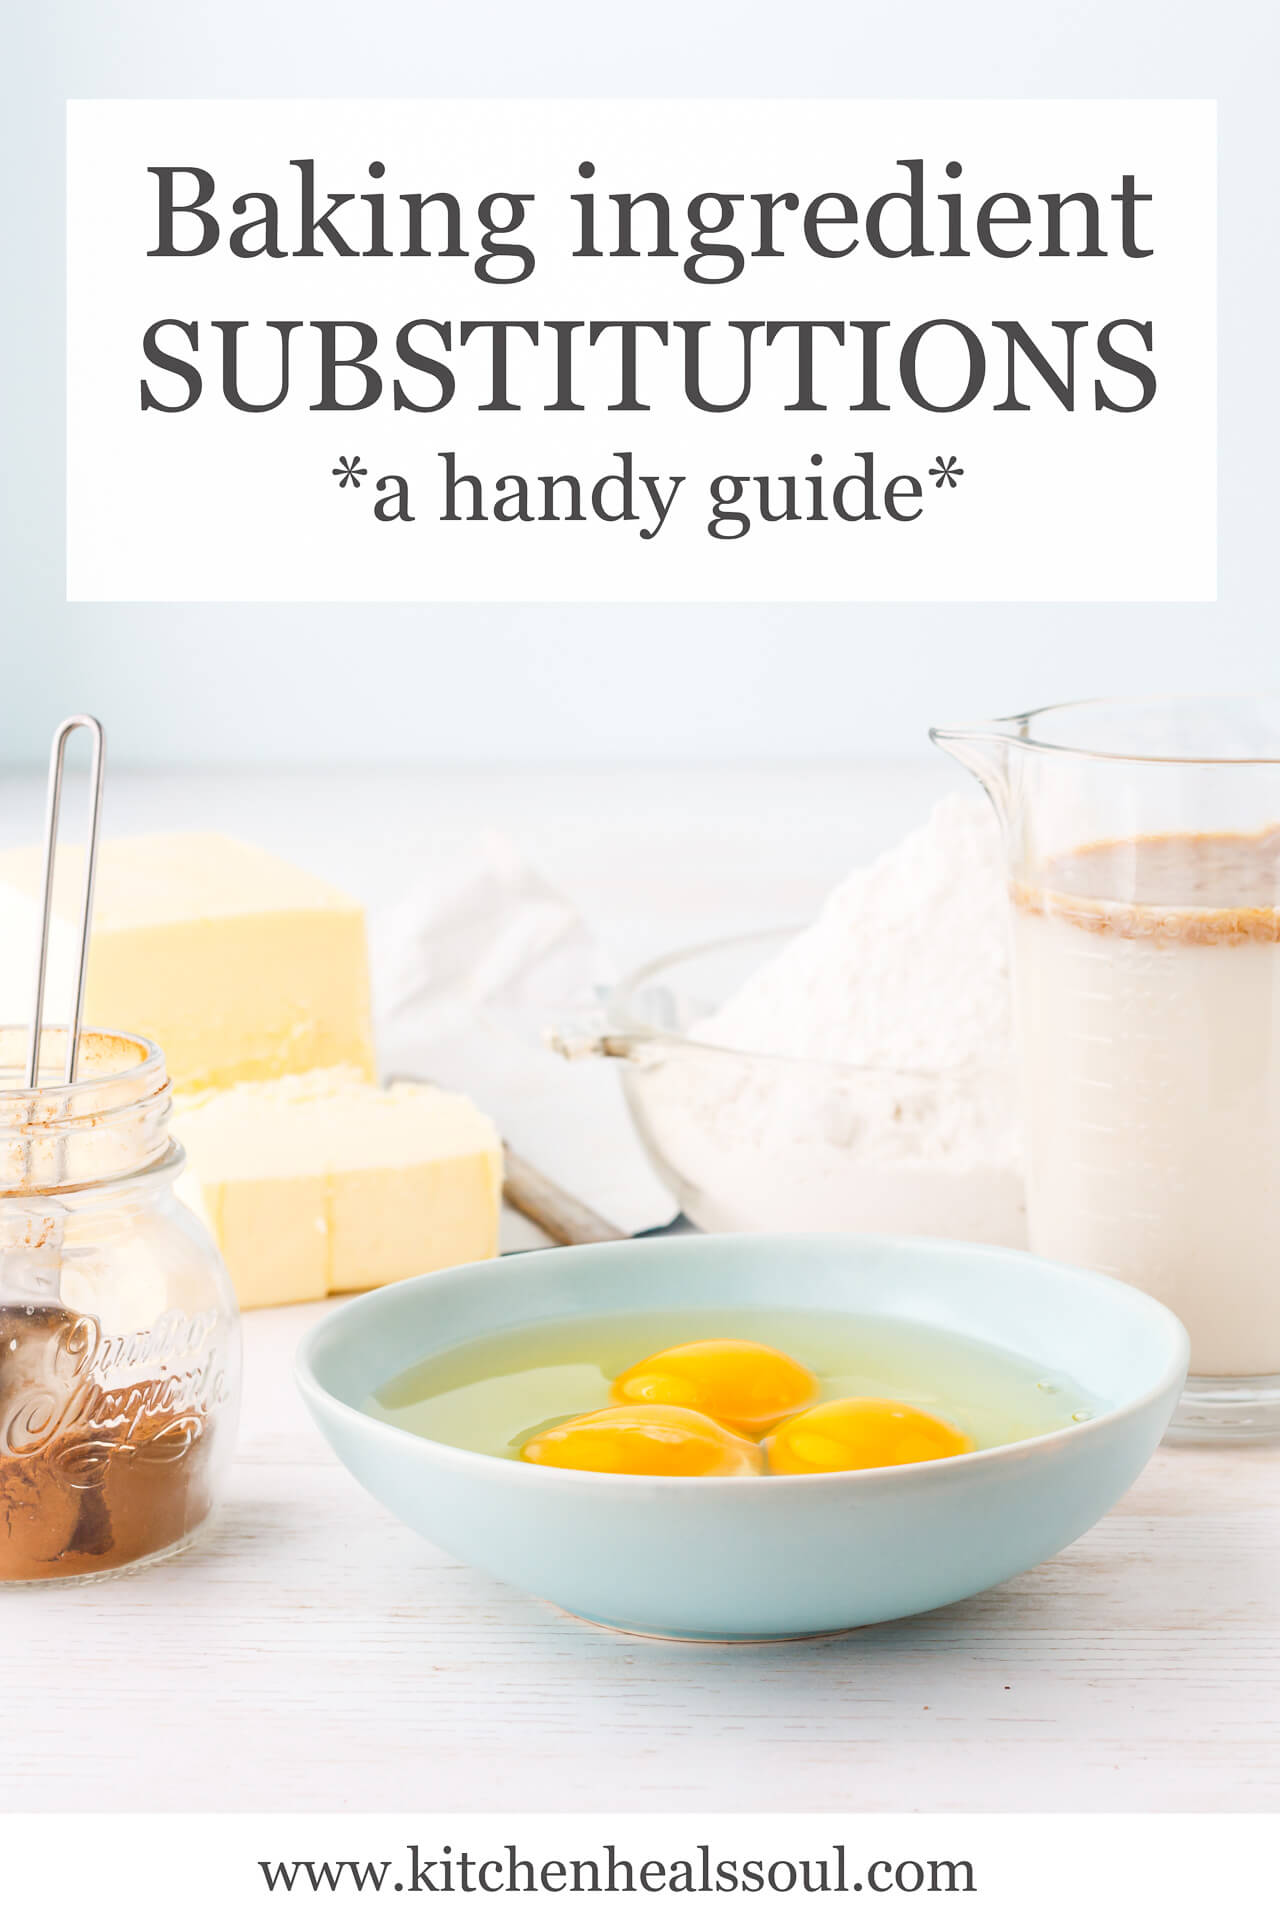 Baking ingredients substitutions, eggs, butter, cinnamon, flour, and dairy